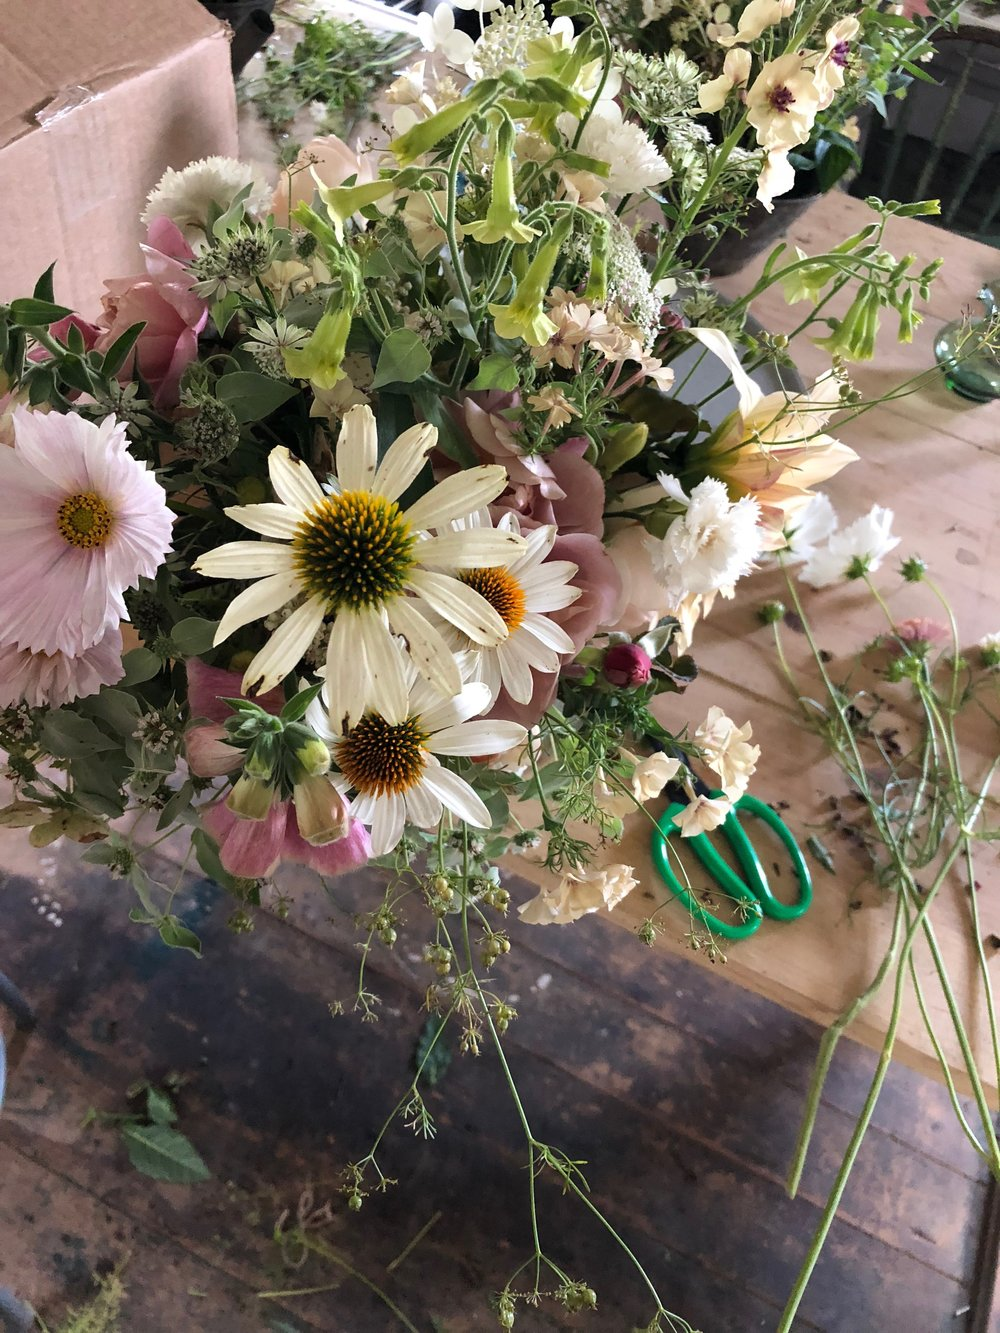 A creation using all the best flowers: Merton foxglove, coriander, white echinacea, 'distant drums' roses, 'starlight dancer' nicotiana, cupcake cosmos, astrantia…